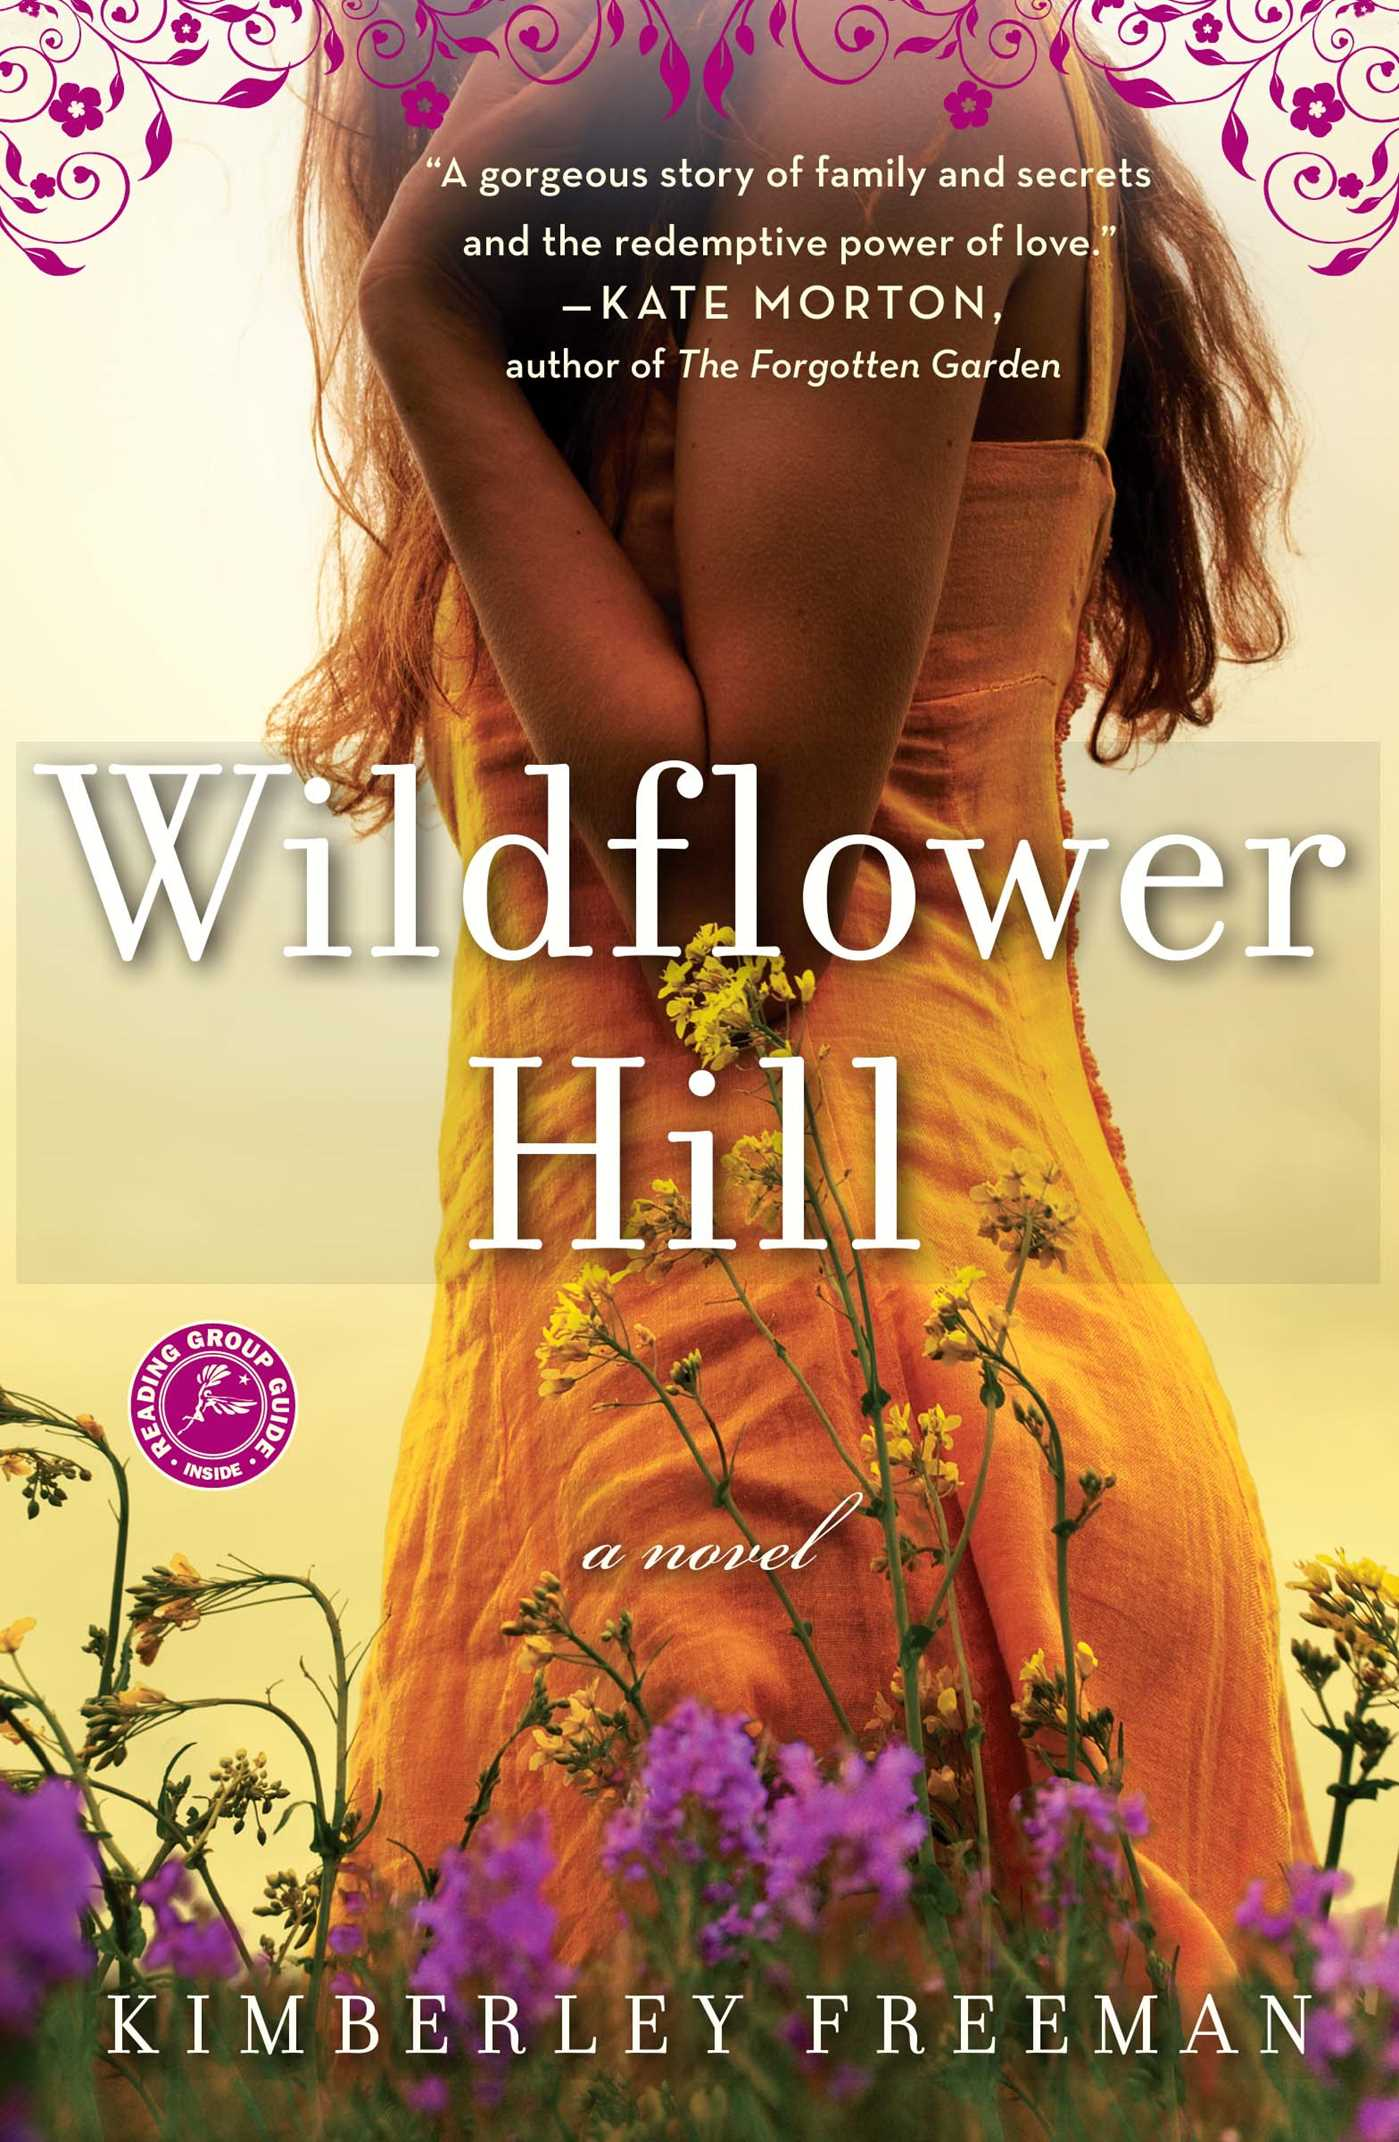 Wildflower-hill-9781451623512_hr